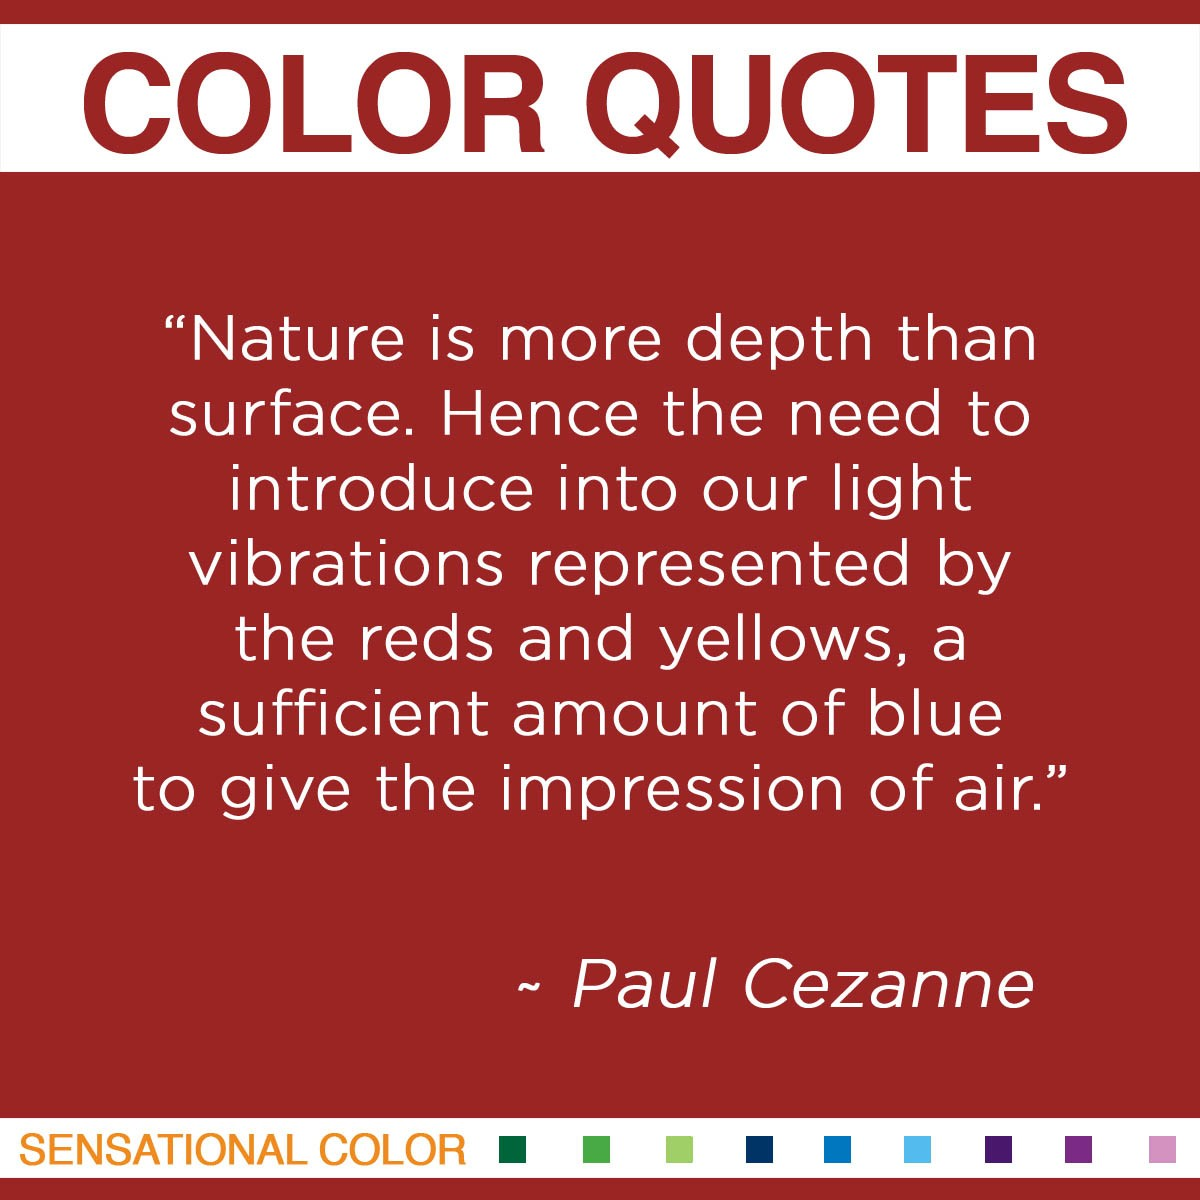 """Nature is more depth than surface. Hence the need to introduce into our light vibrations represented by the reds and yellows, a sufficient amount of blue to give the impression of air."" - Paul Cezanne"